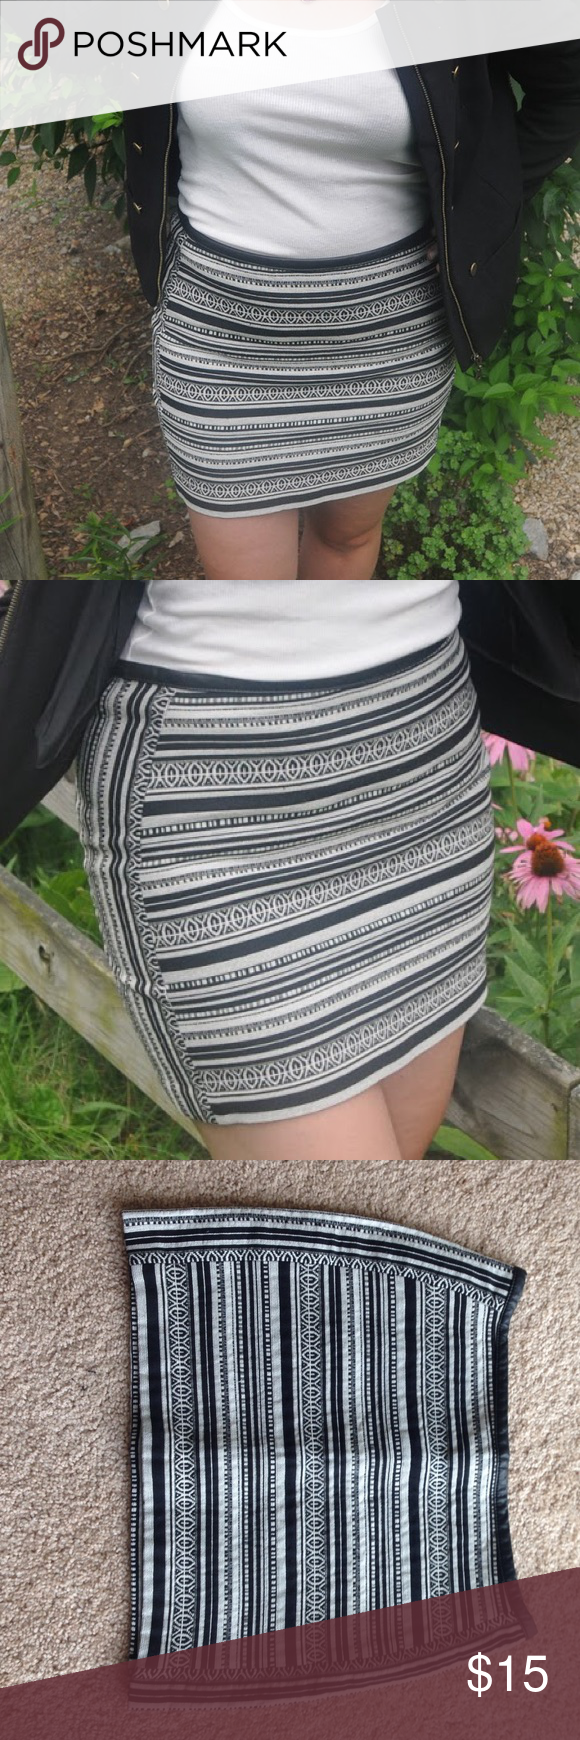 H&M printed mini skirt Size 10 black & cream printed mini skirt from H&M. Only worn a handful of times. Excellent condition. H&M Skirts Mini